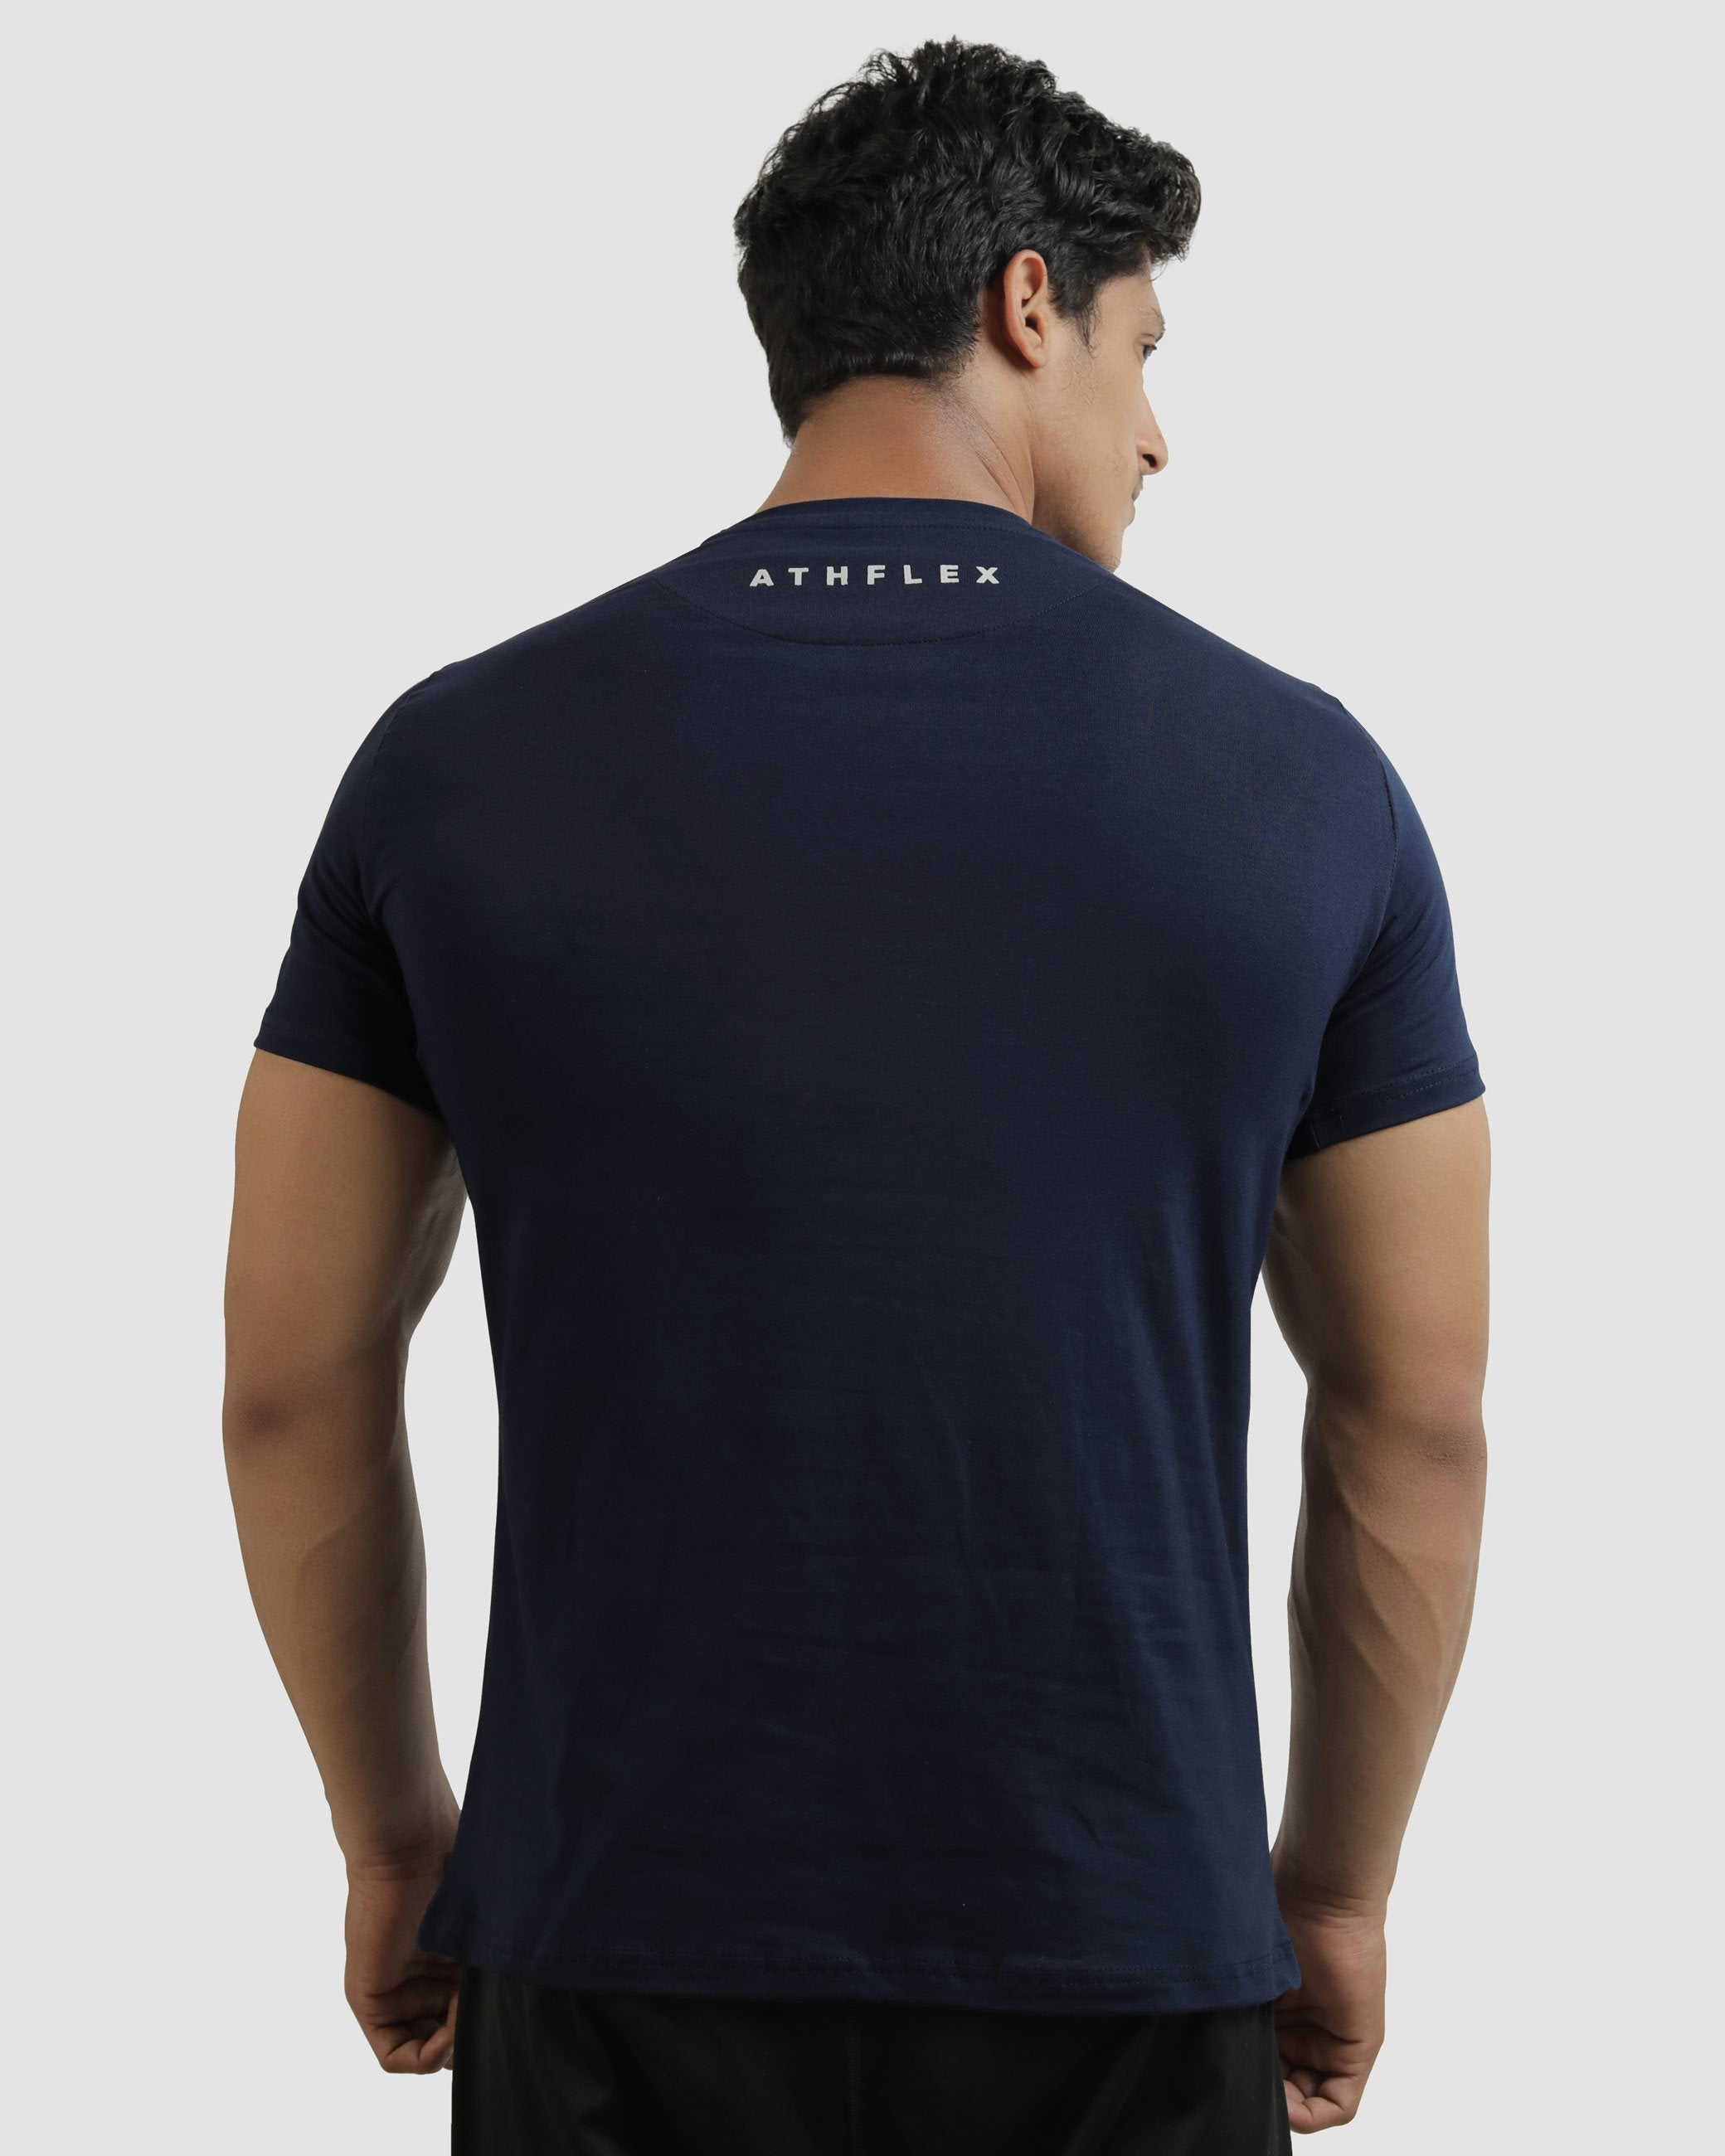 Flex On T-Shirt (Midnight Blue) Athflex